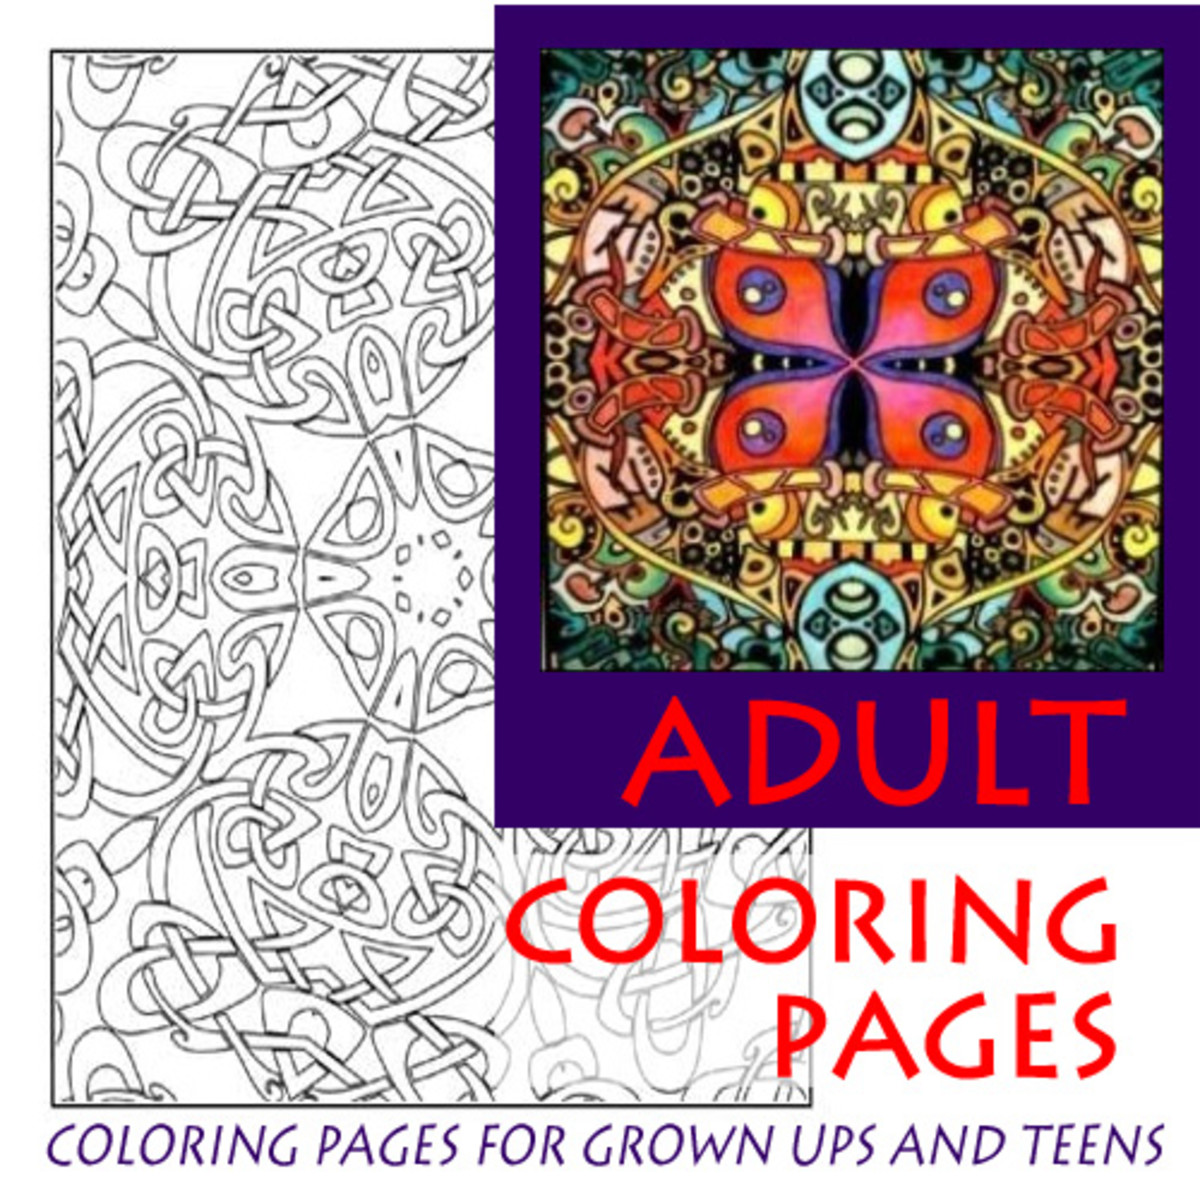 Coloring for adults and teens for relaxation, stress reduction, therapy and art hobby enjoyment